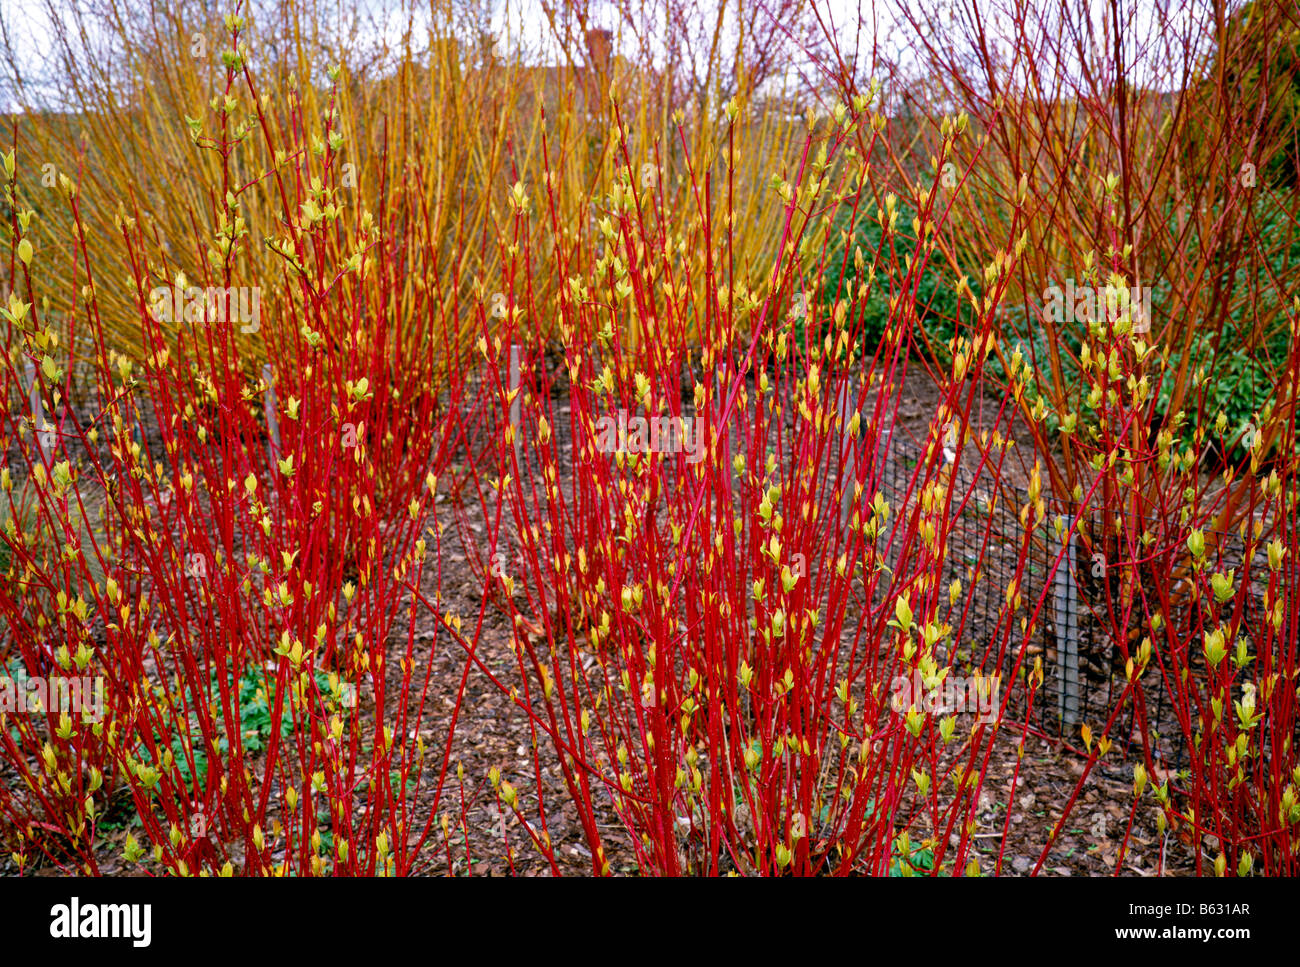 Cornus Alba Sibirica In Winter Stock Photo, Royalty Free Image ...